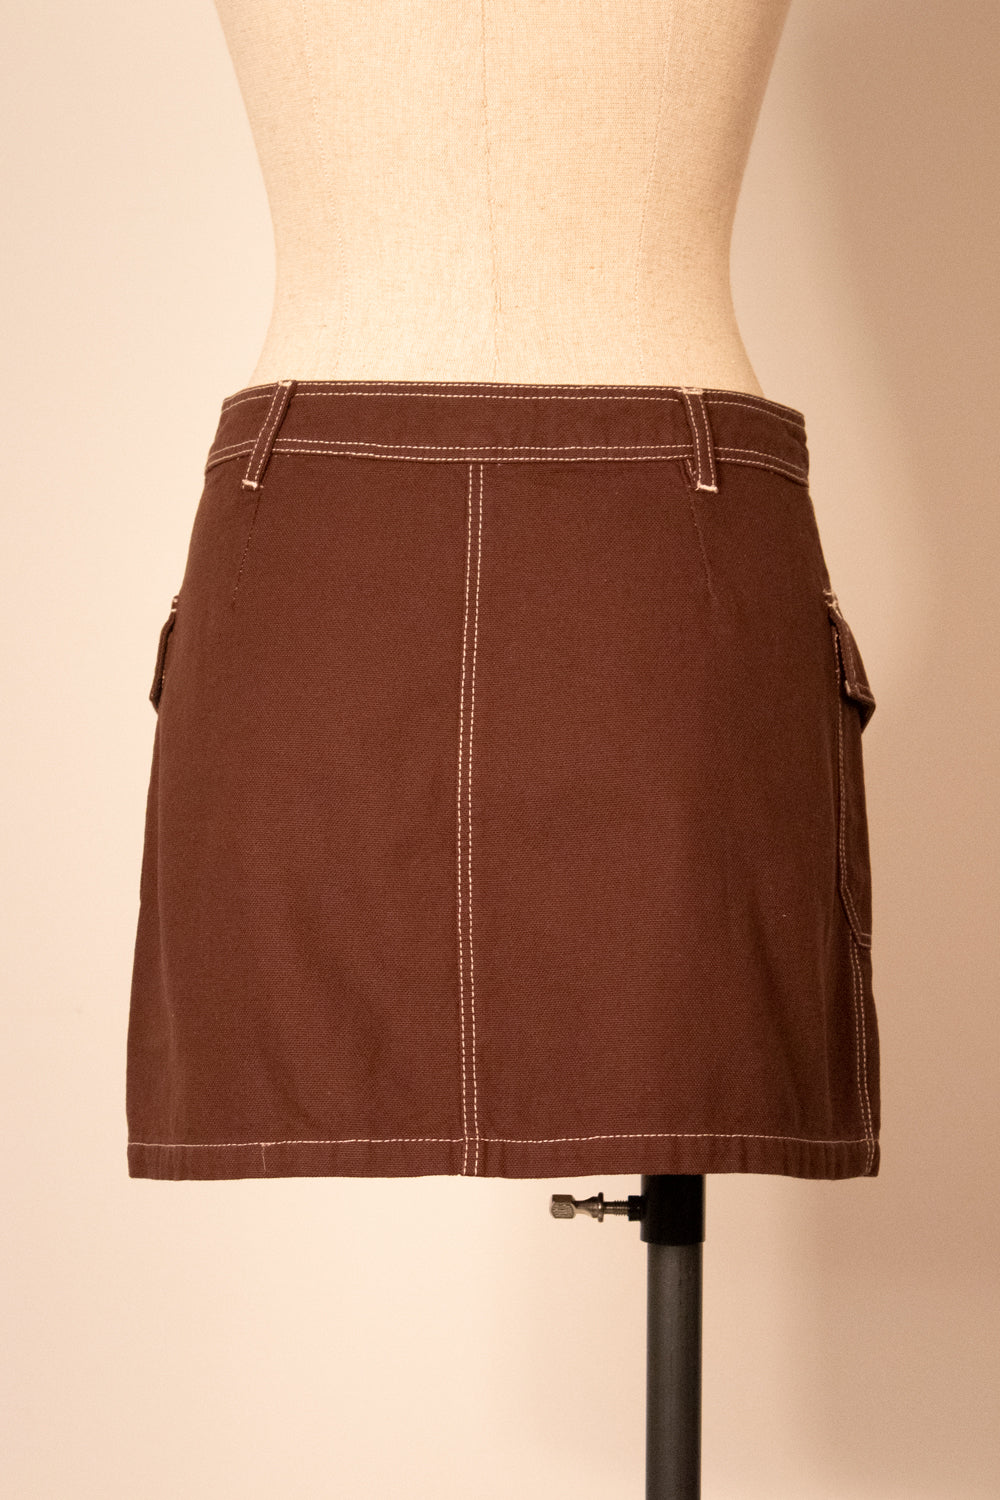 Moschino Jeans brown cotton super mini skirt